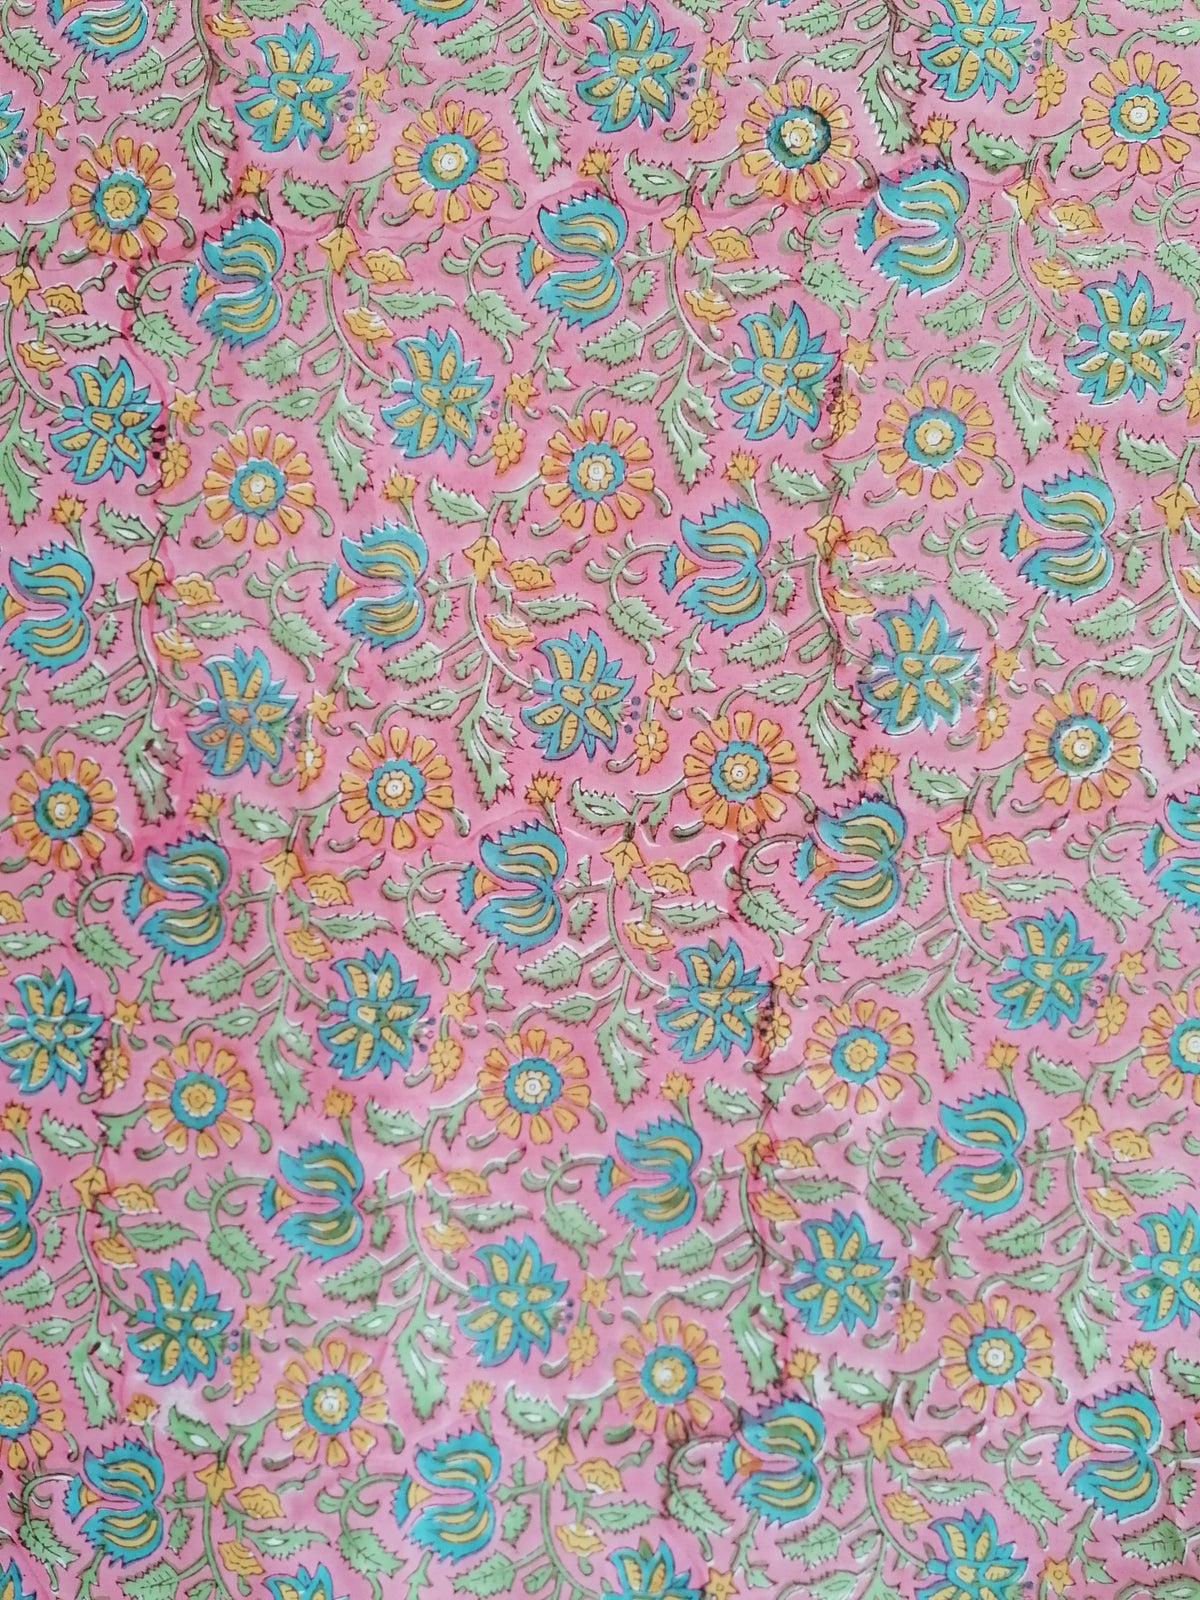 Image of Namasté fabric colors